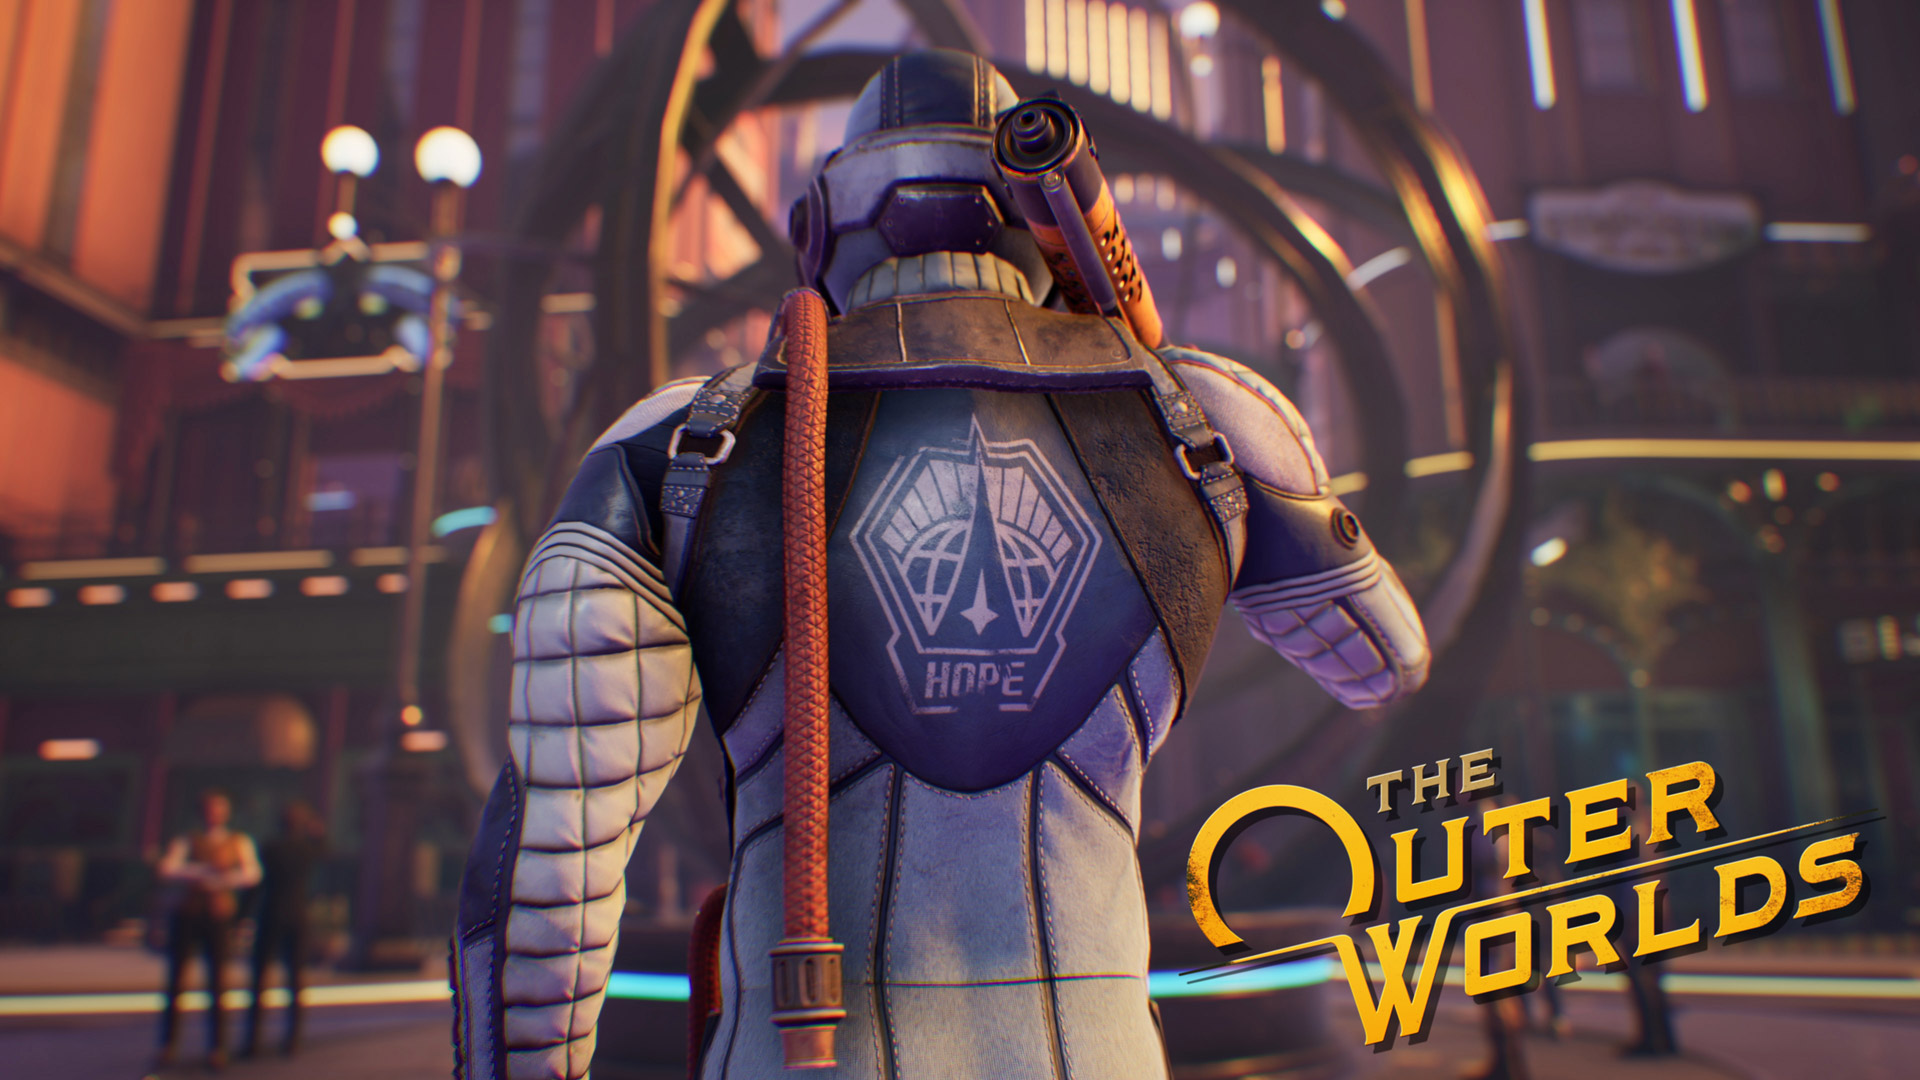 The Outer Worlds Wallpaper in 1920x1080